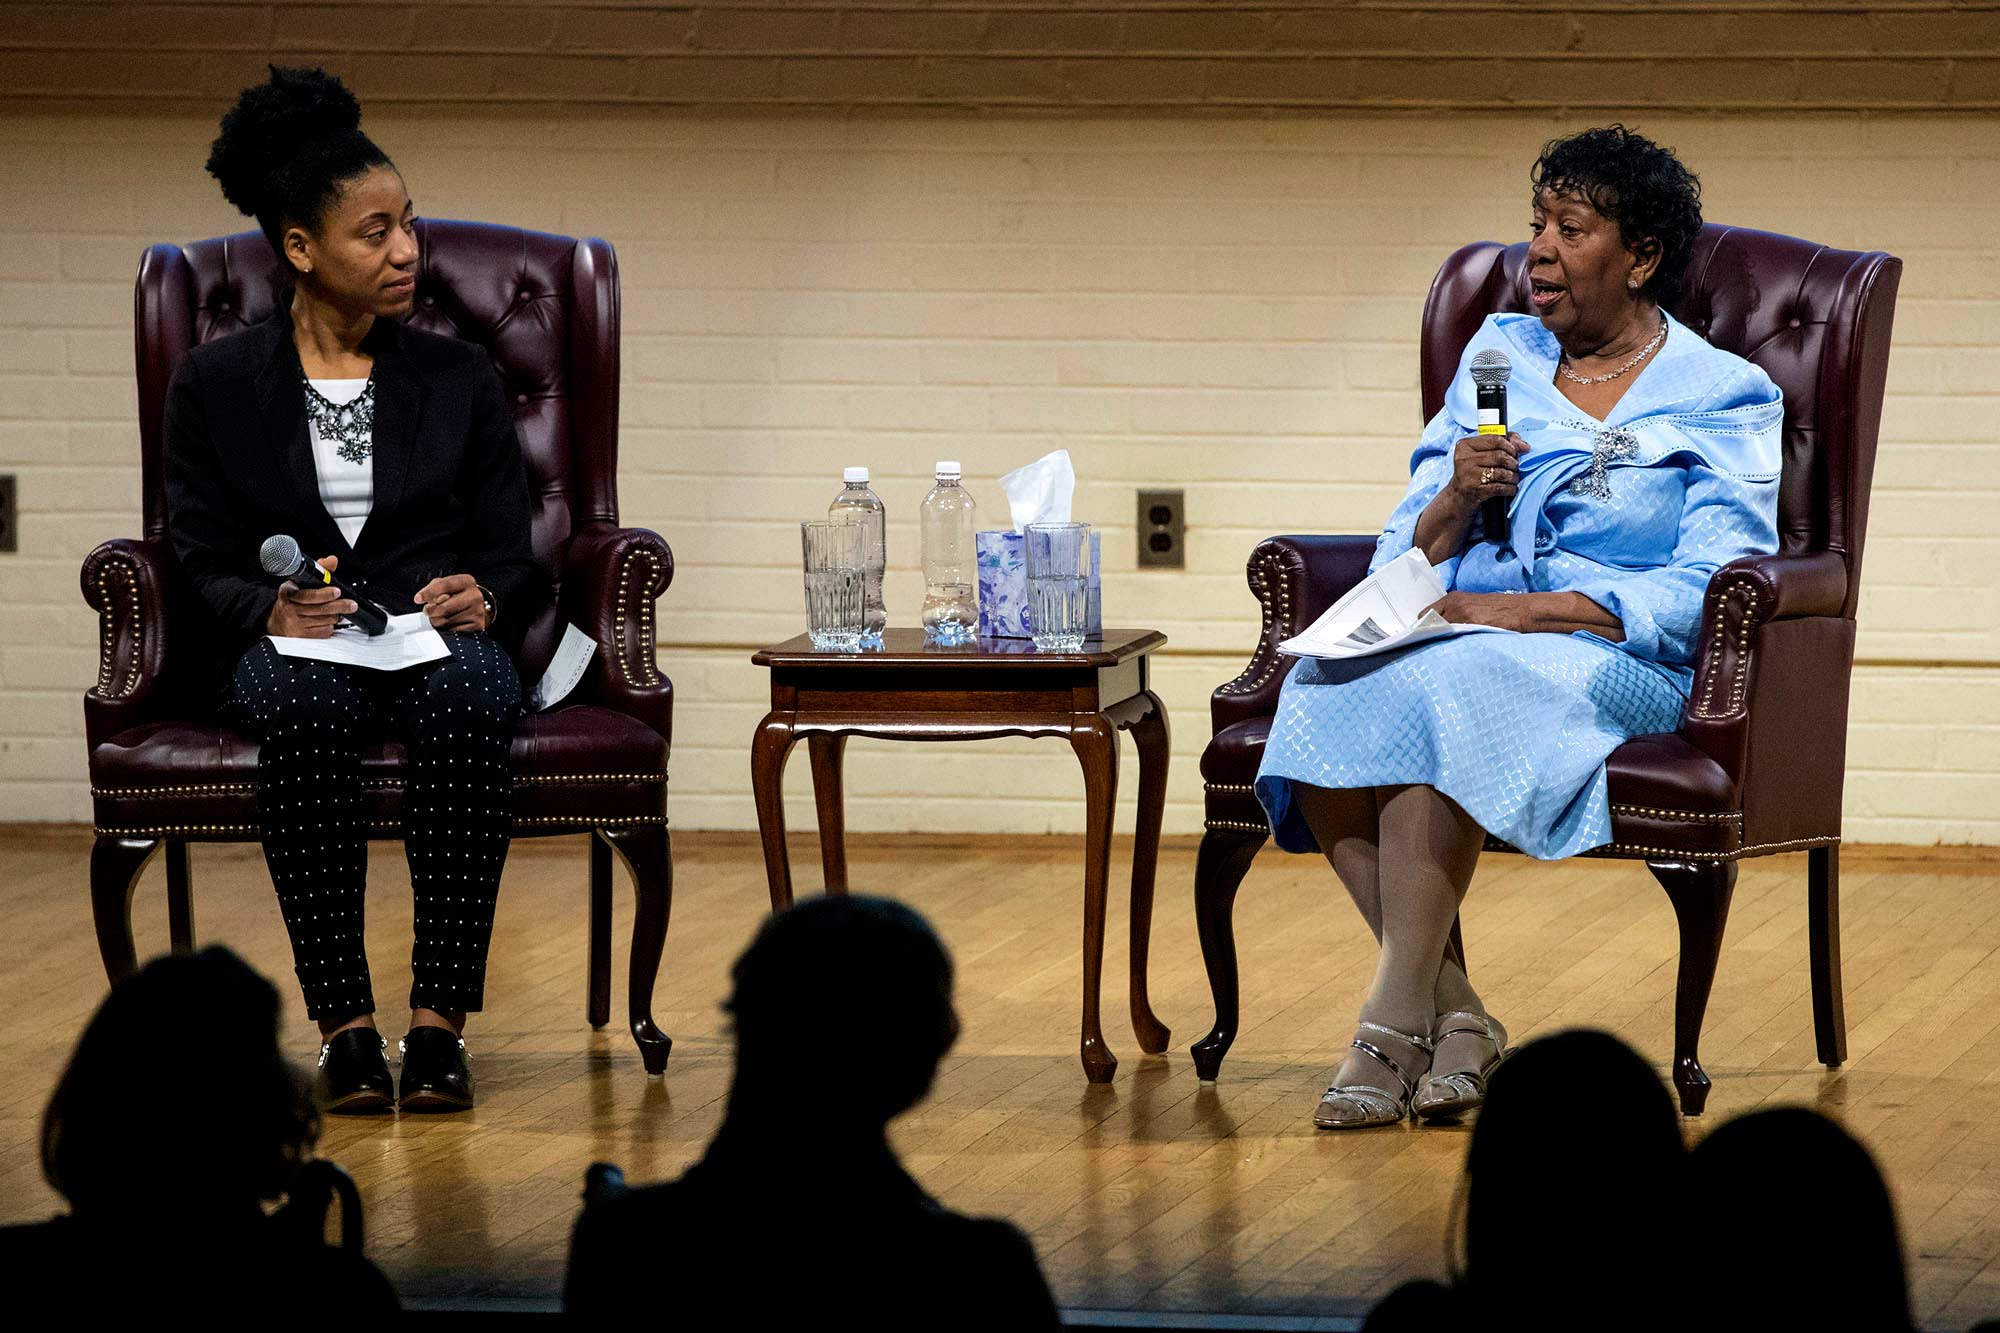 Nursing doctoral student Tori Tucker interviews Mavis Claytor during Friday's event at the Nursing School's McLeod Auditorium.